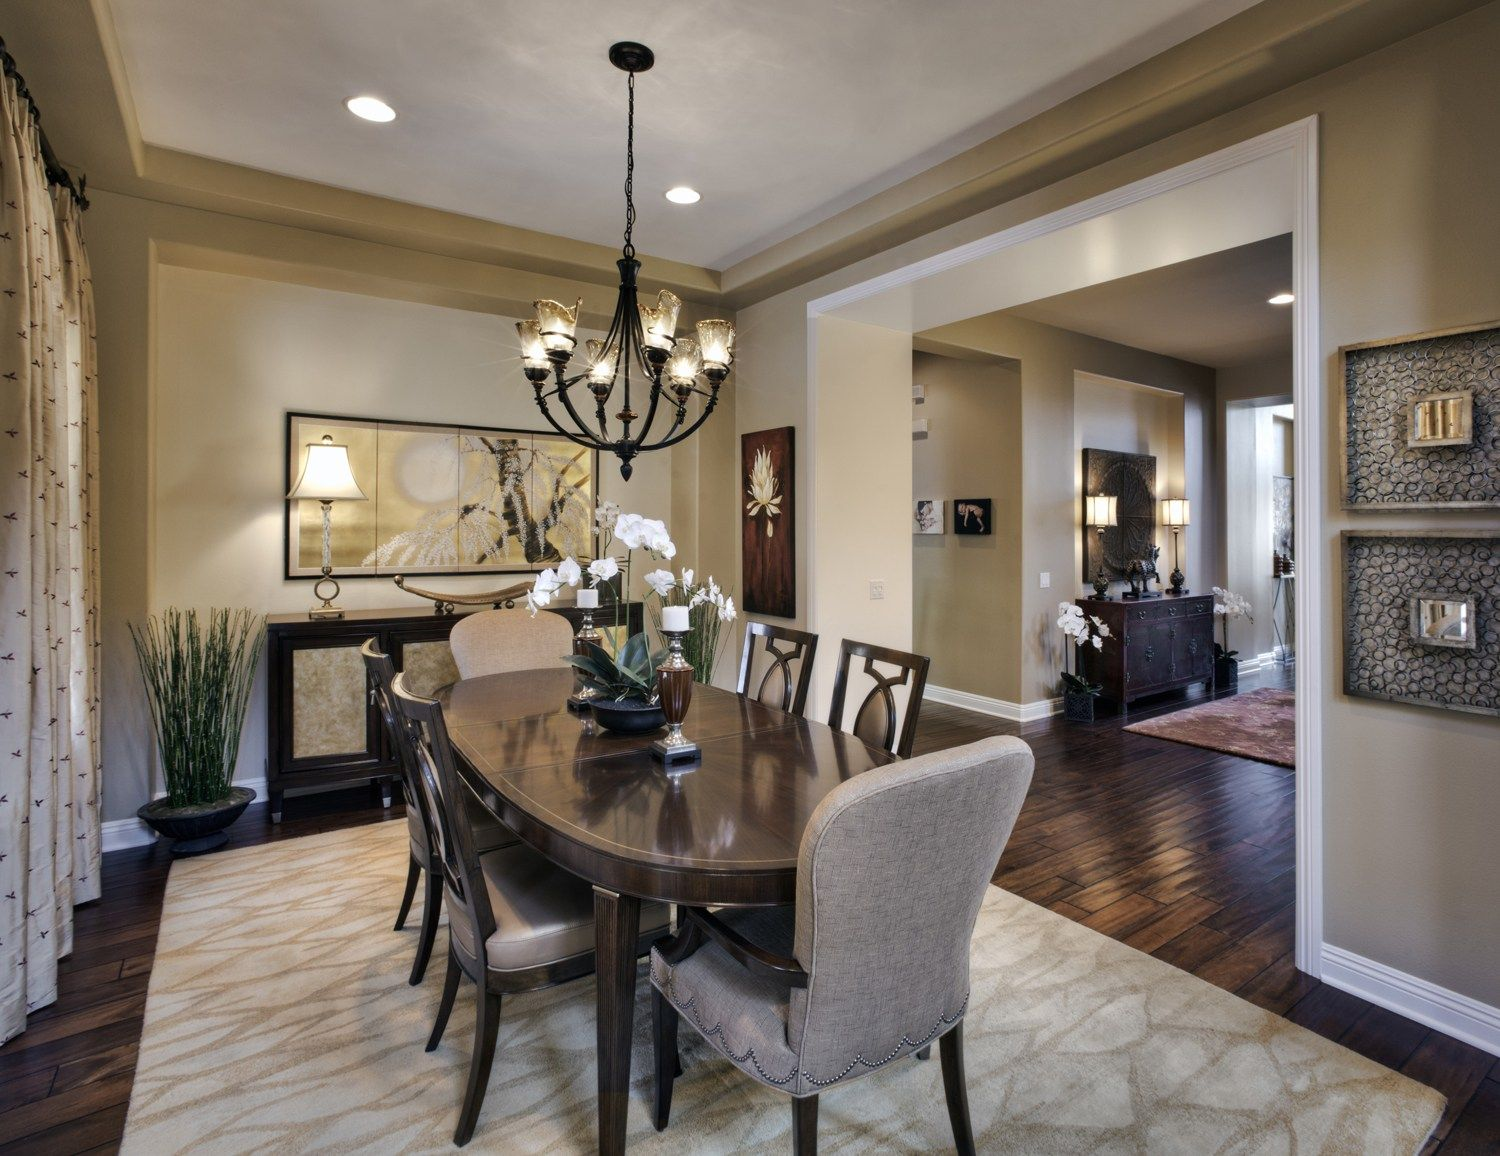 Simple Tips To Renovate Your Dining Area With 2017 Trends  Dining Inspiration Trends In Dining Rooms Decorating Inspiration